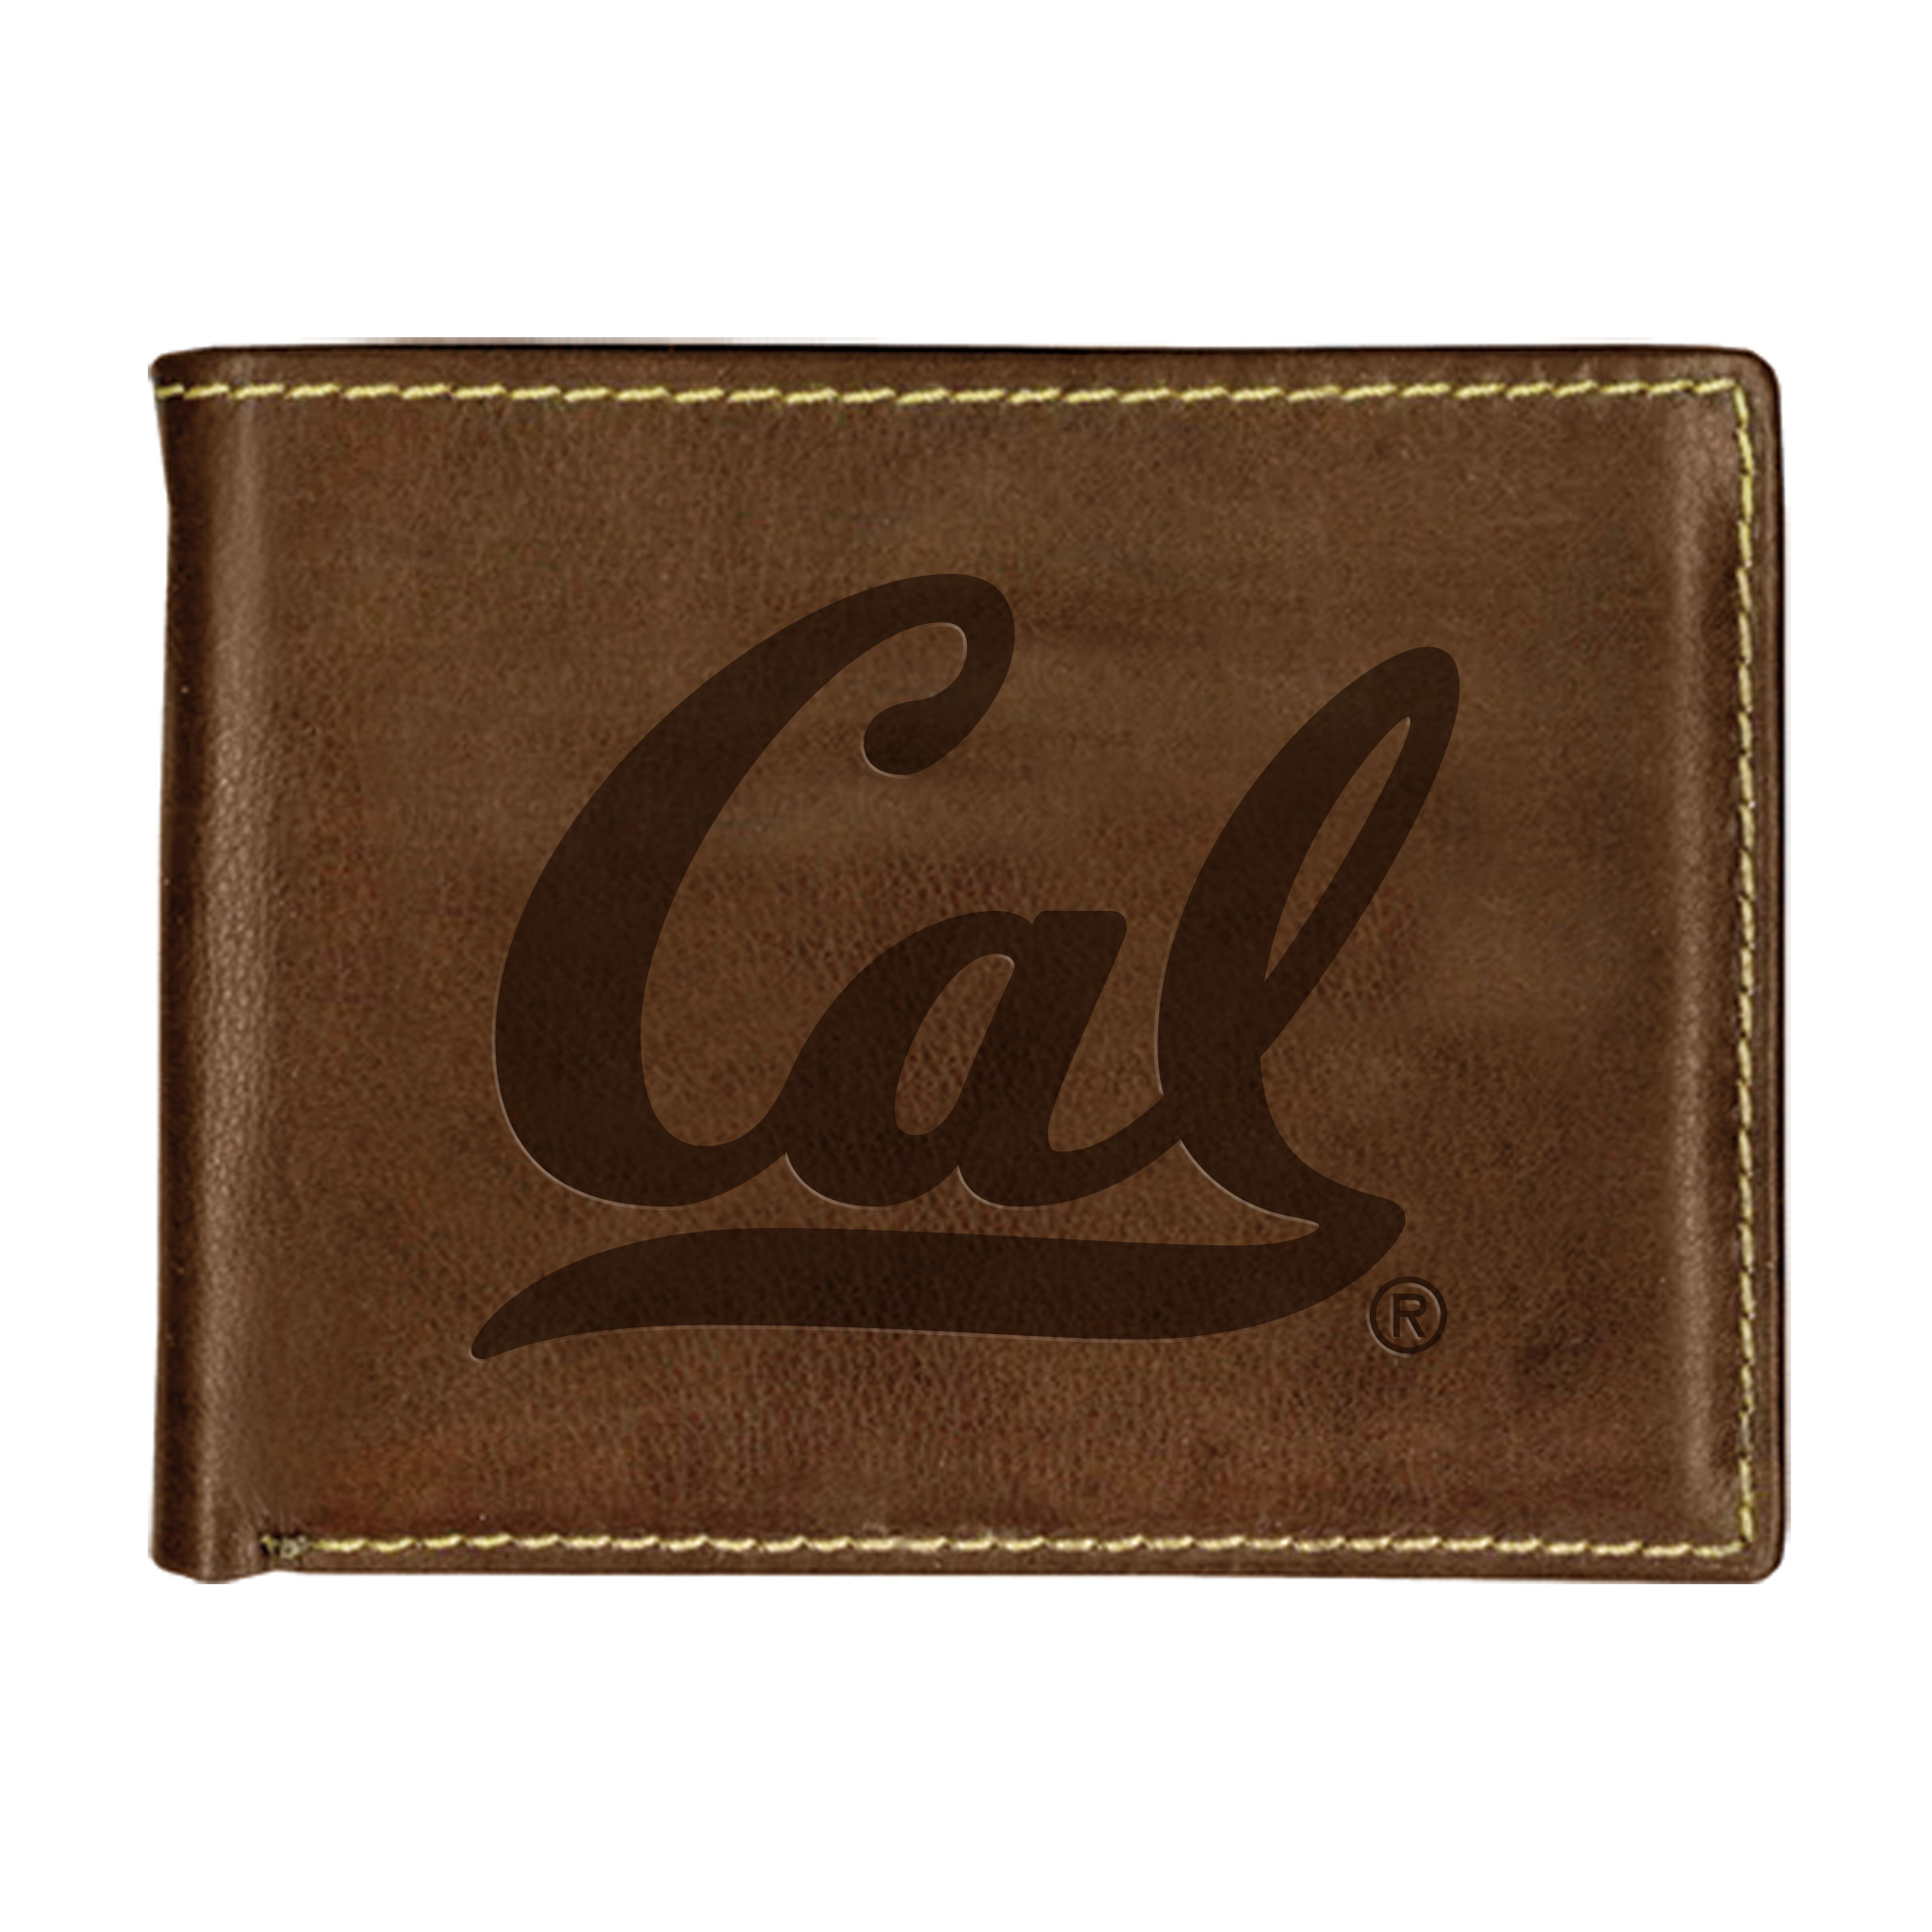 "University of California Berkeley Carolina Sewn Stitch Billfold ""Cal"""